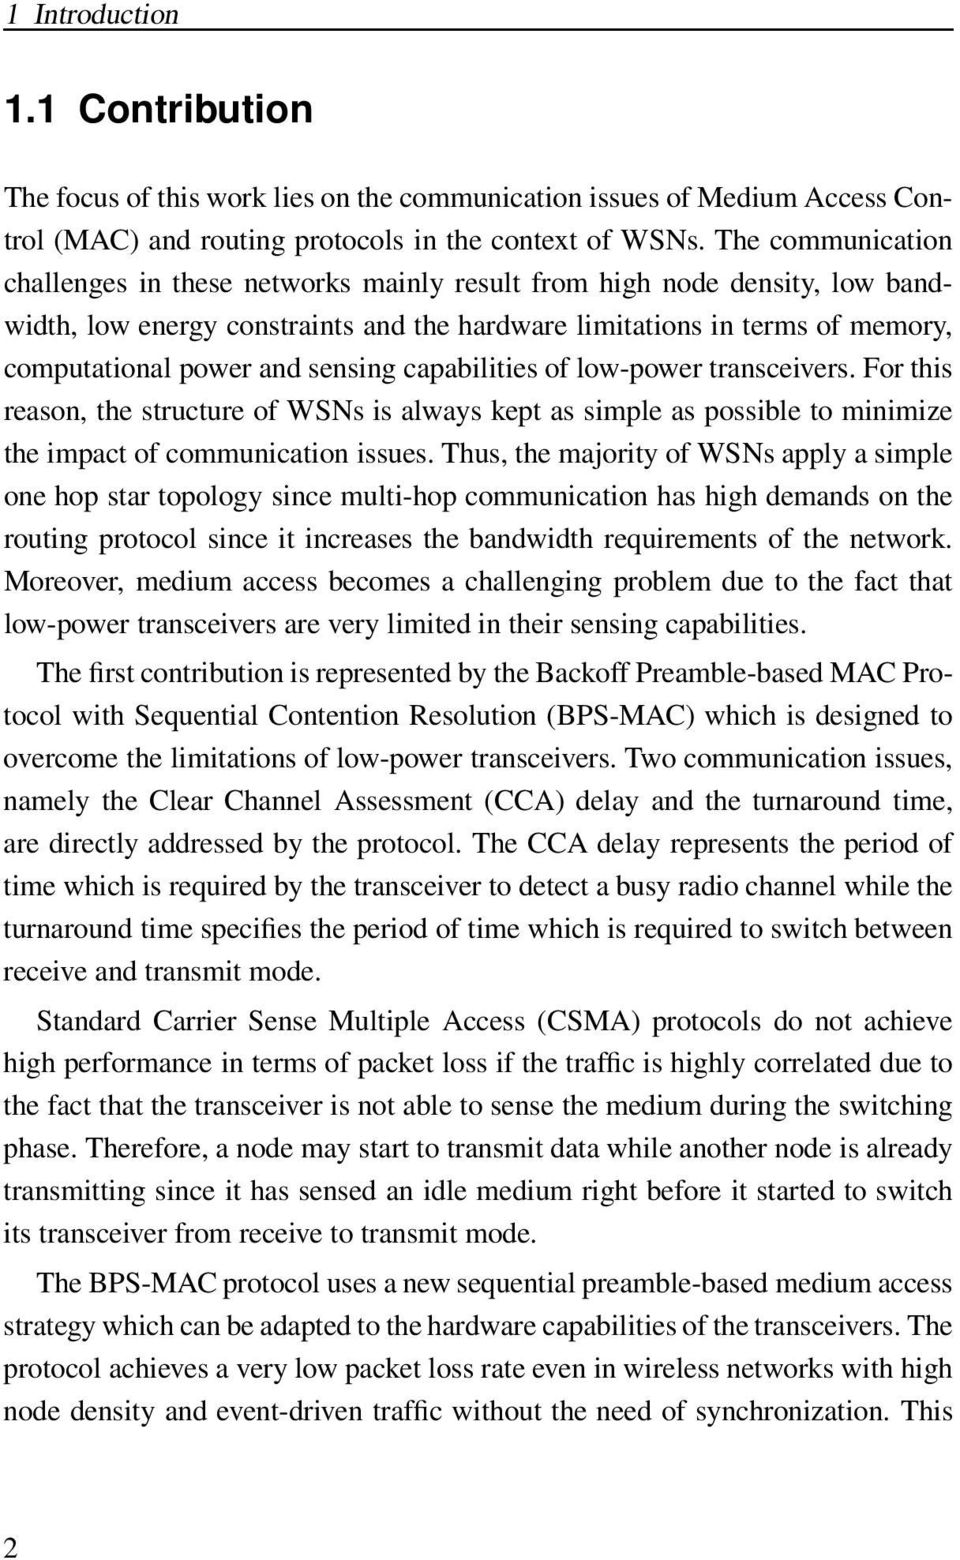 sensing capabilities of low-power transceivers. For this reason, the structure of WSNs is always kept as simple as possible to minimize the impact of communication issues.